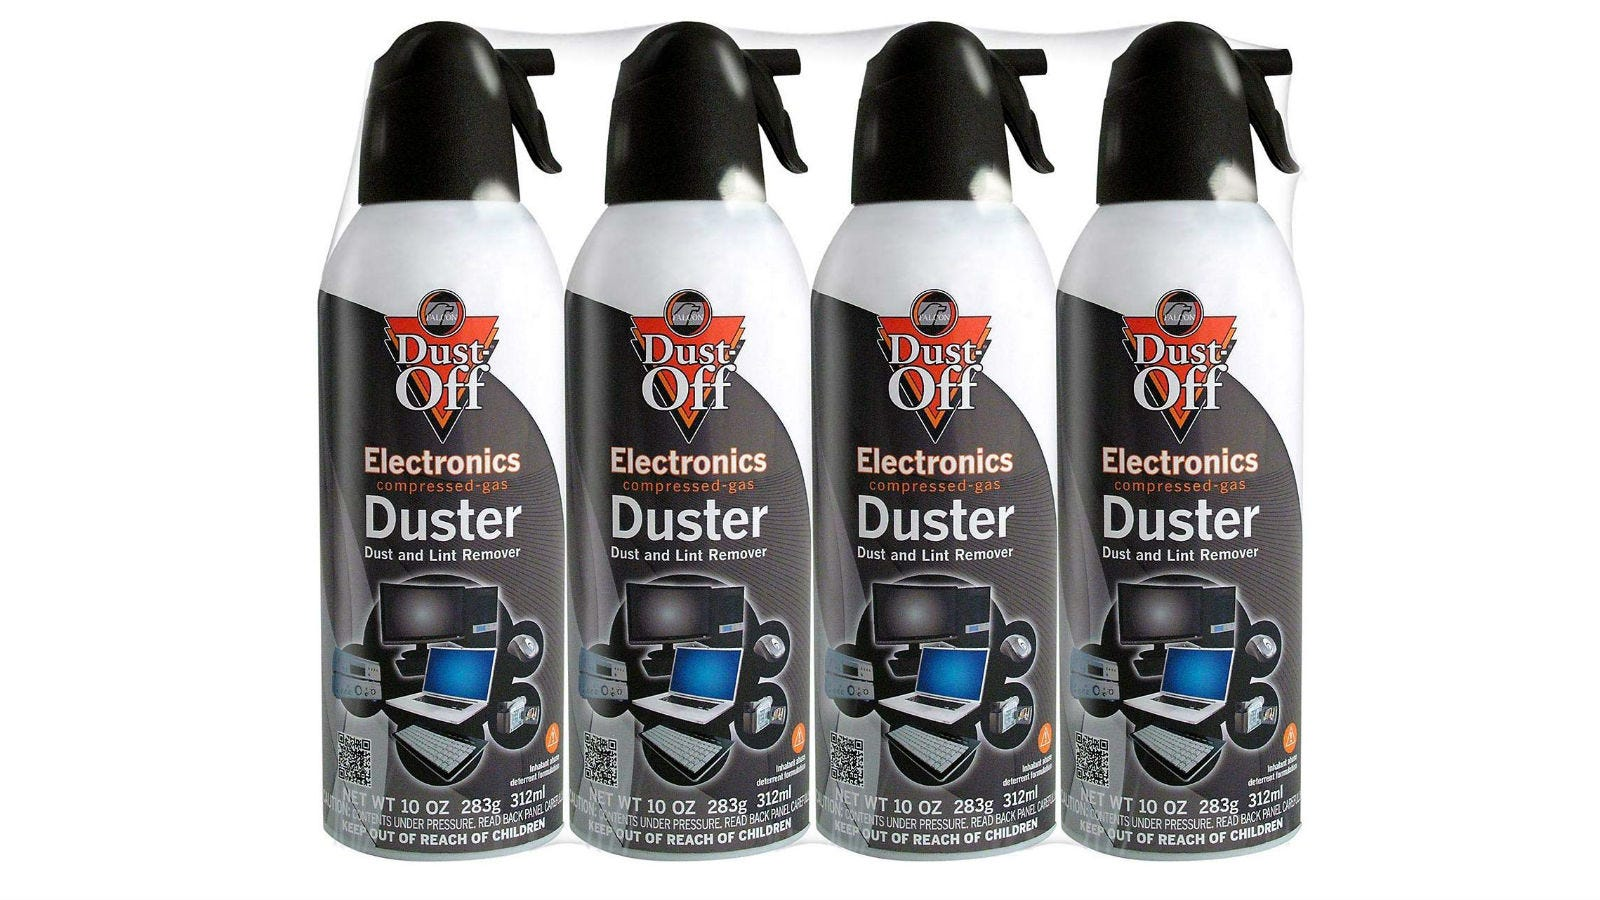 Four spray bottles of Falcon Dust-Off Electronics Compressed-Gas Duster.